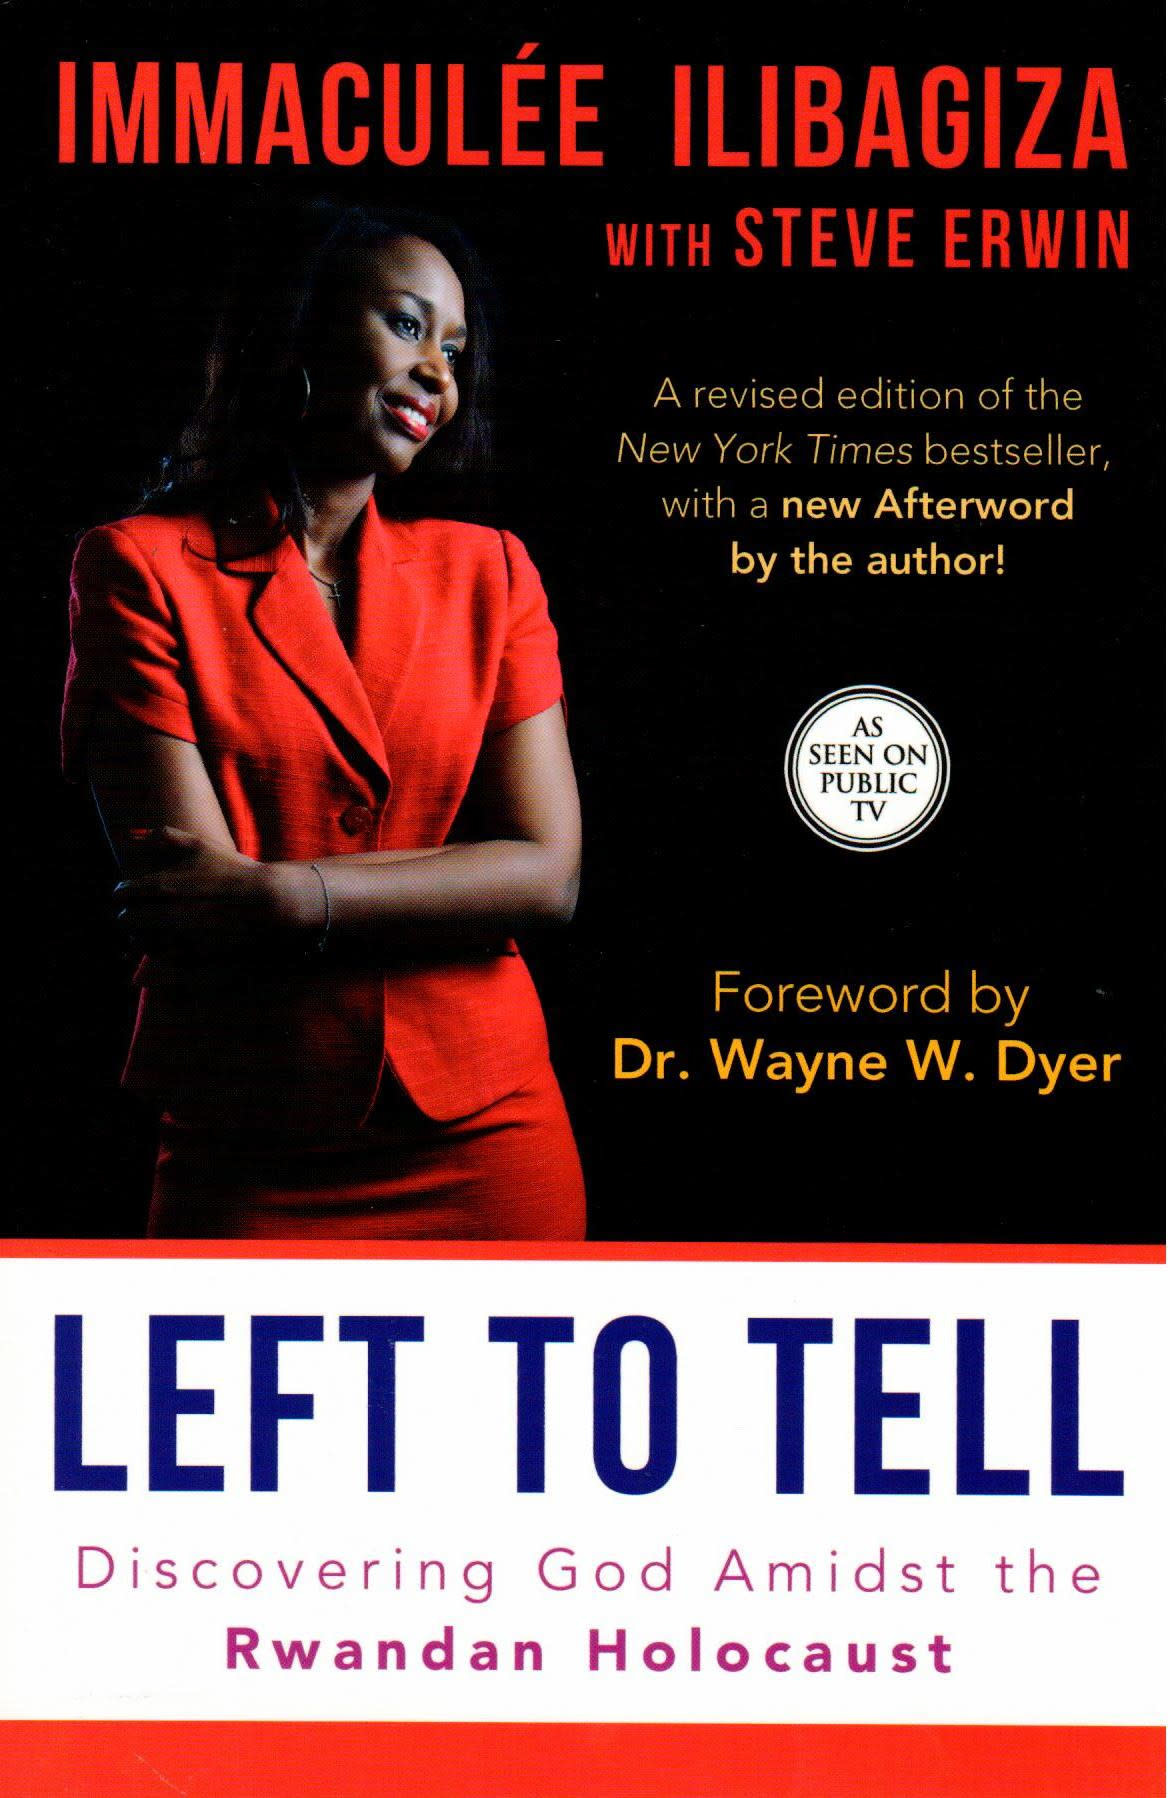 Left to Tell: Discovering God Amidst the Rwandan Holocaust